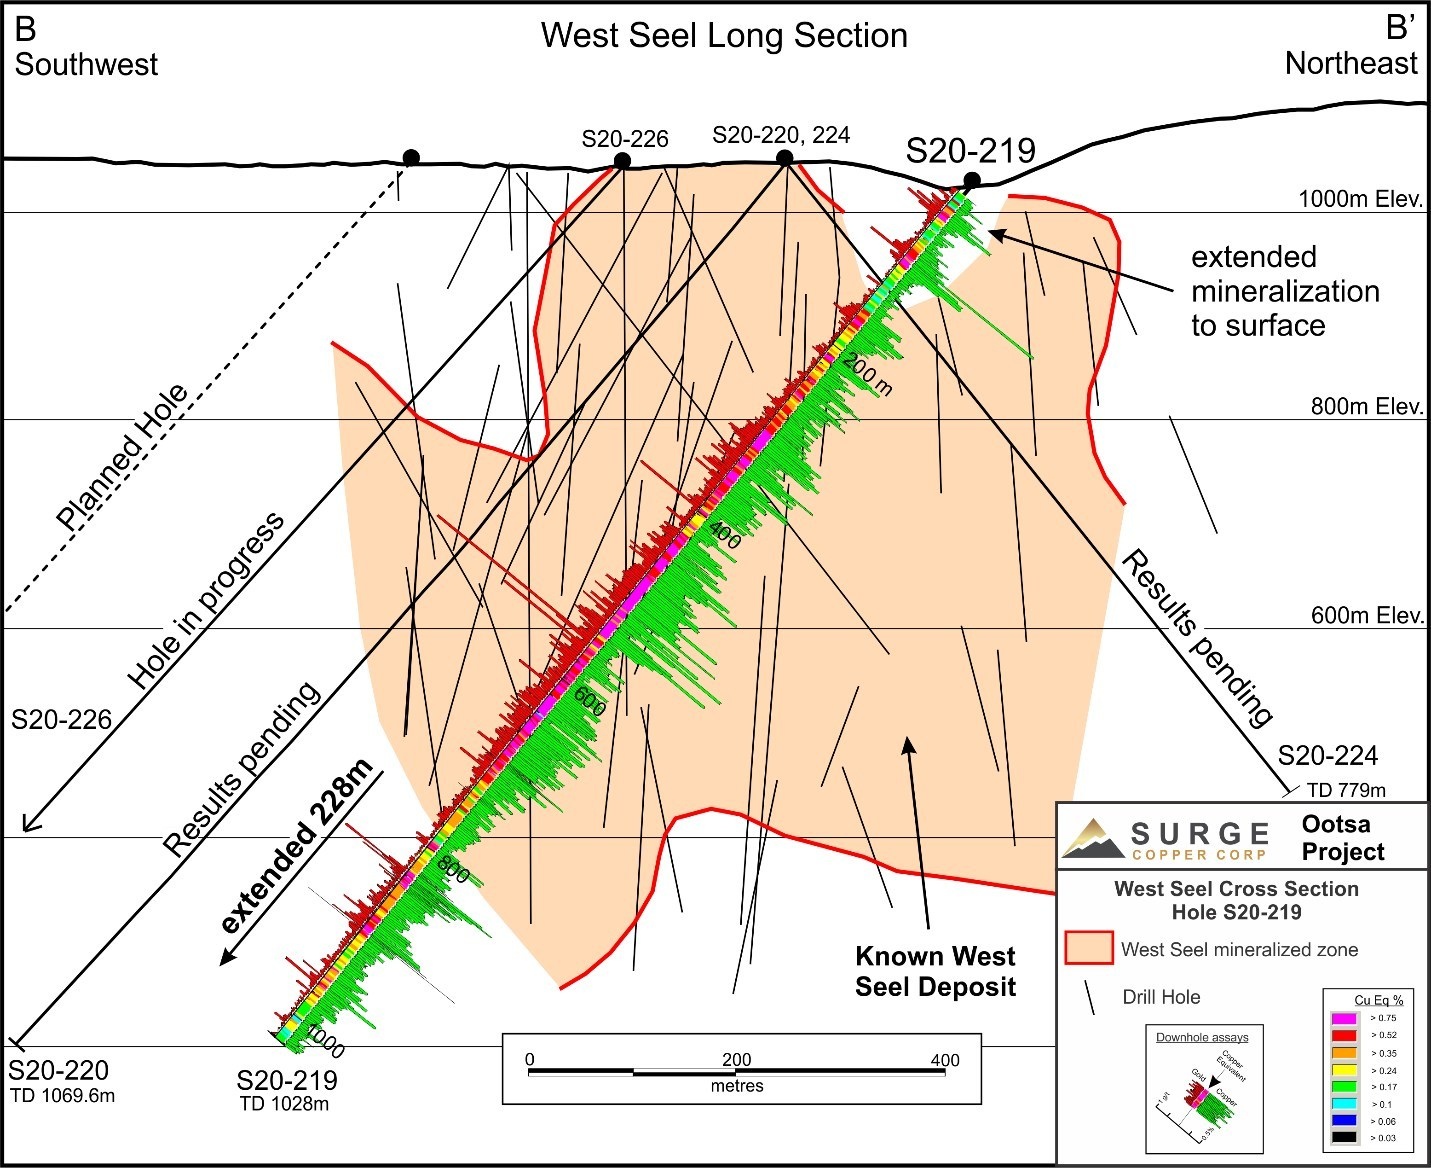 Figure 2: West Seel Long Section Showing Hole S20-219 (CNW Group/Surge Copper Corp.)